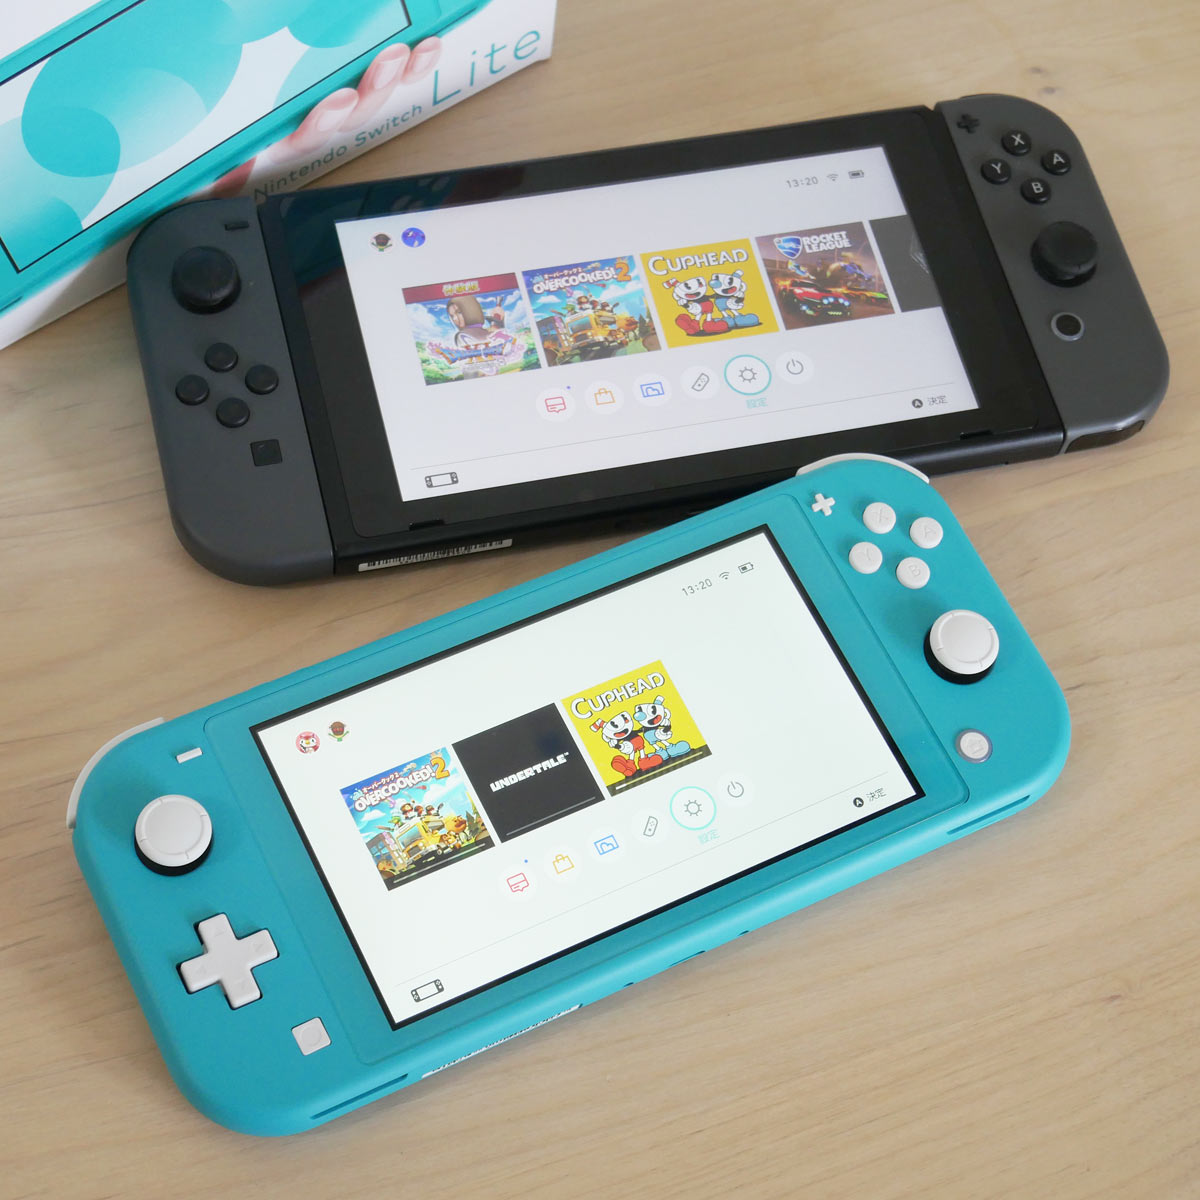 Nintendo SwitchとSwitch Lite、どっちを買うべき? 比較して違いを検証